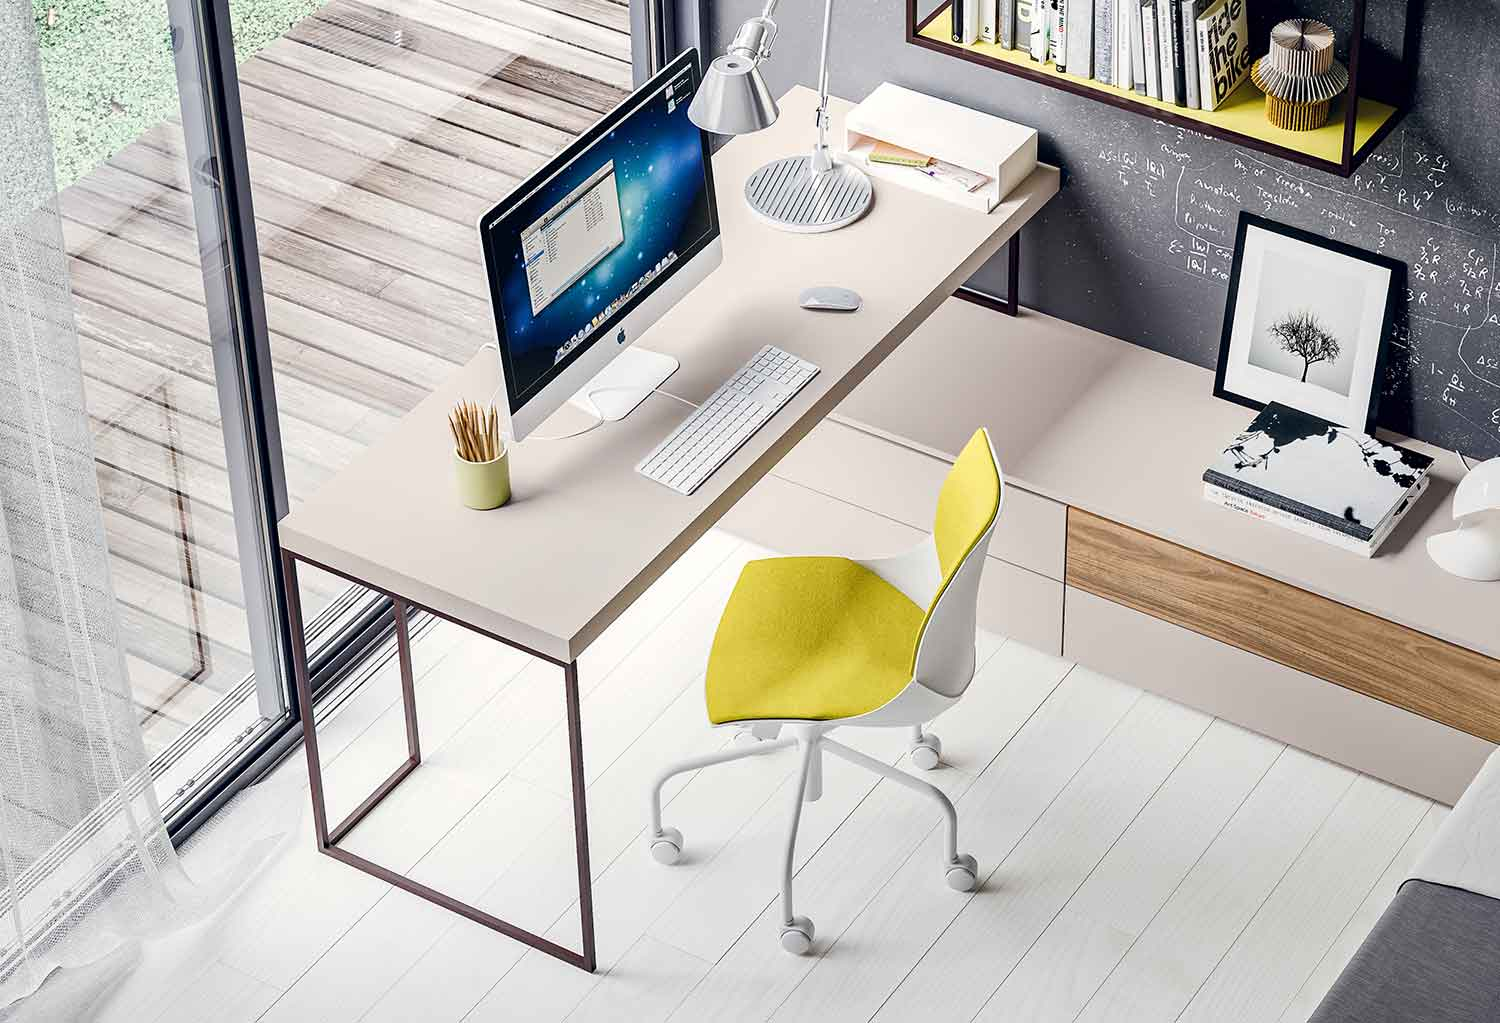 Kios metal frame desk and integrated drawer units